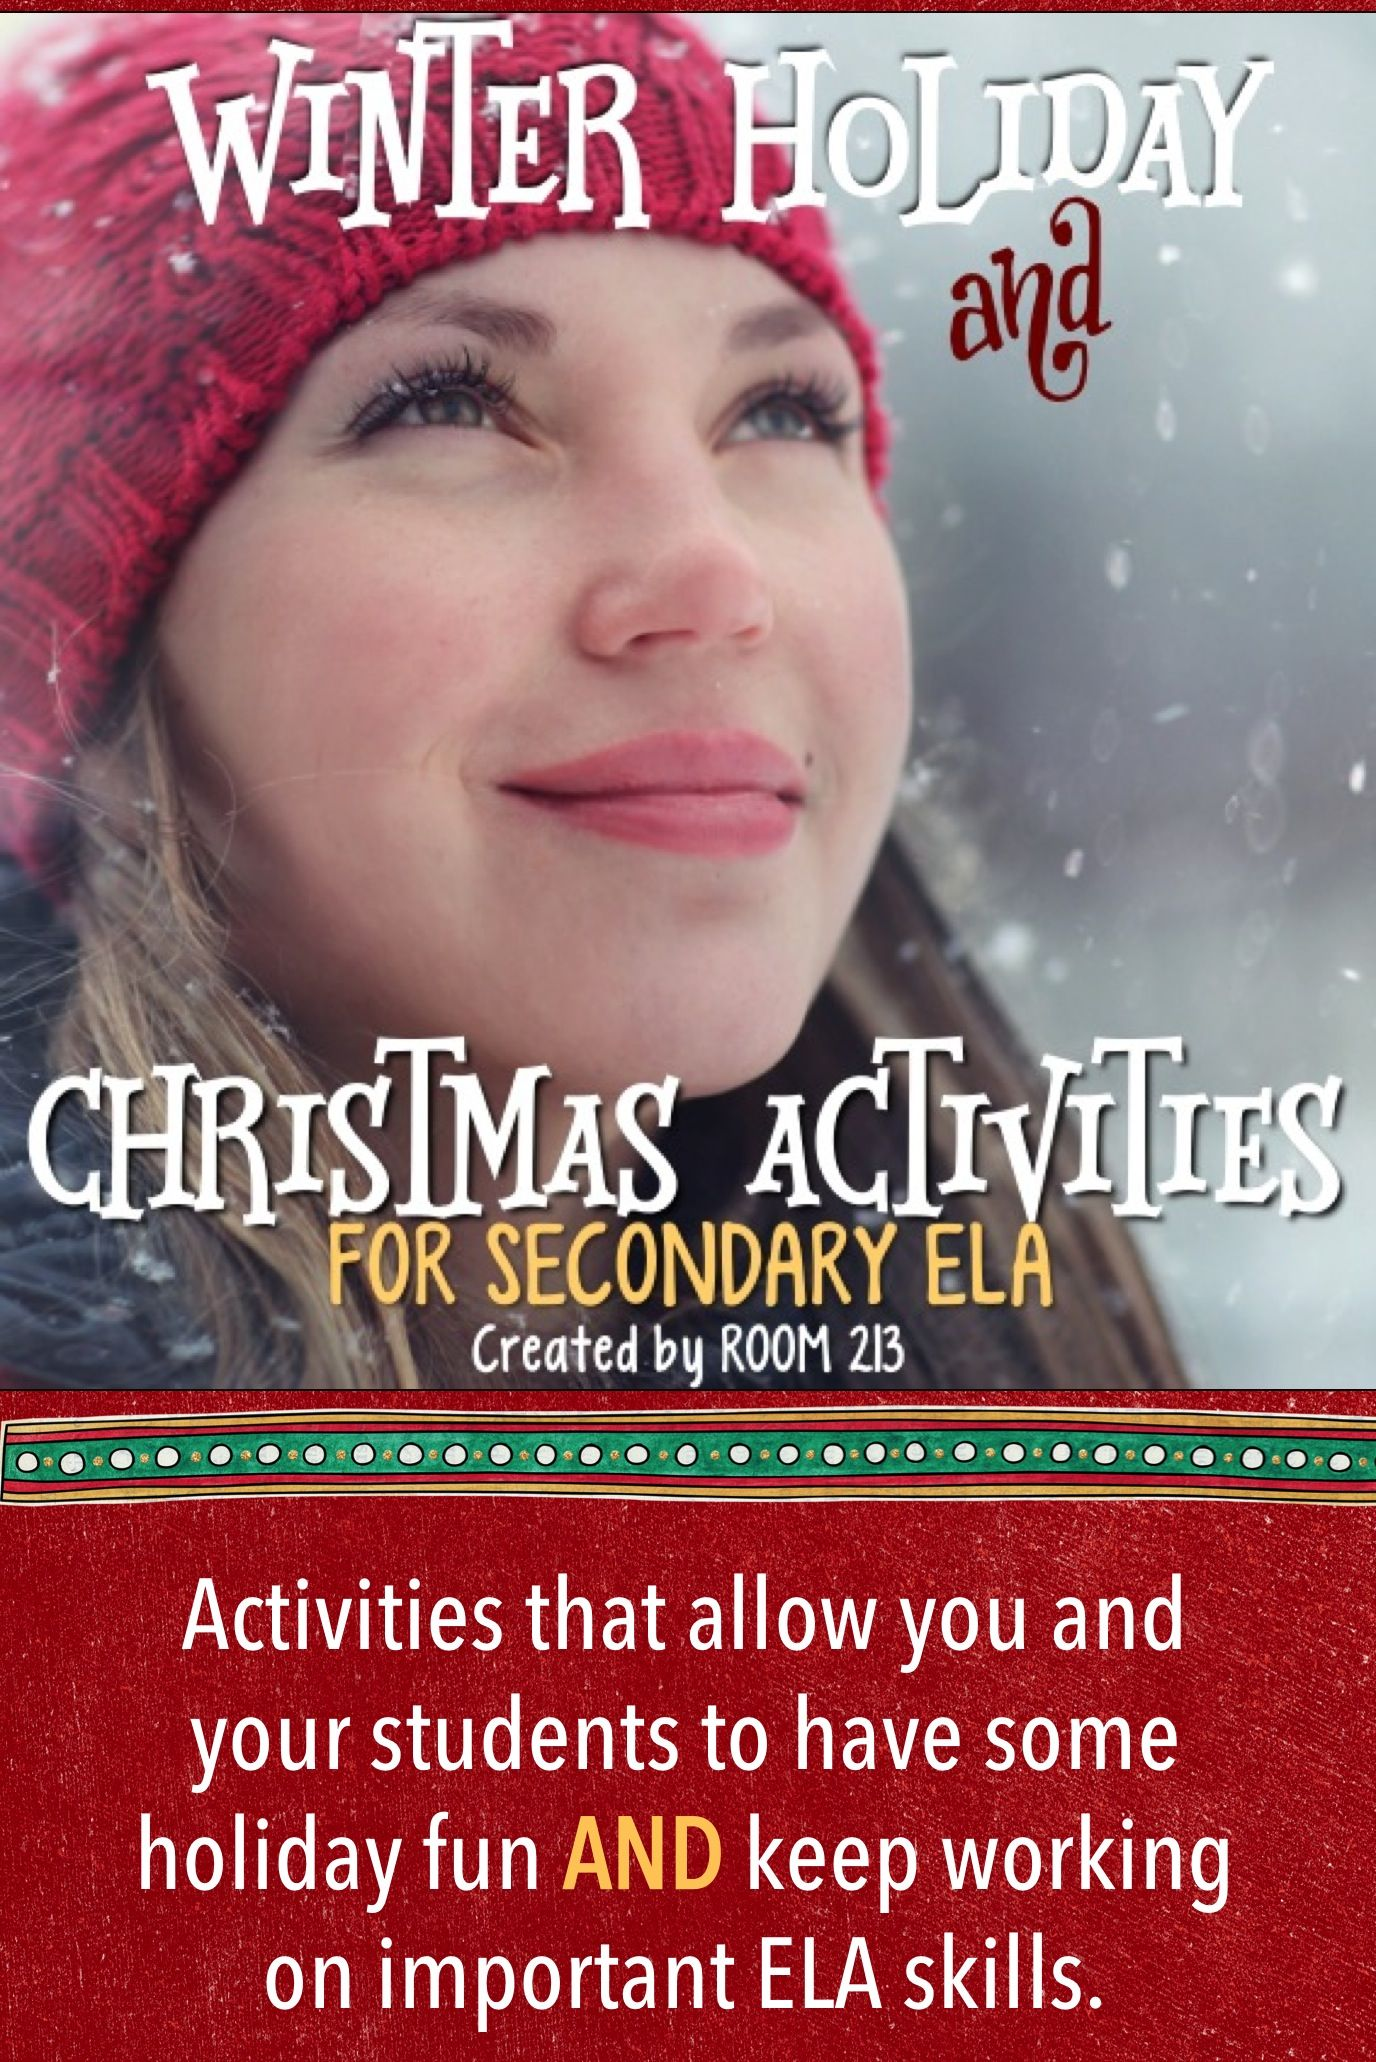 christmas and winter holidays activities for secondary ela education ideas school high. Black Bedroom Furniture Sets. Home Design Ideas